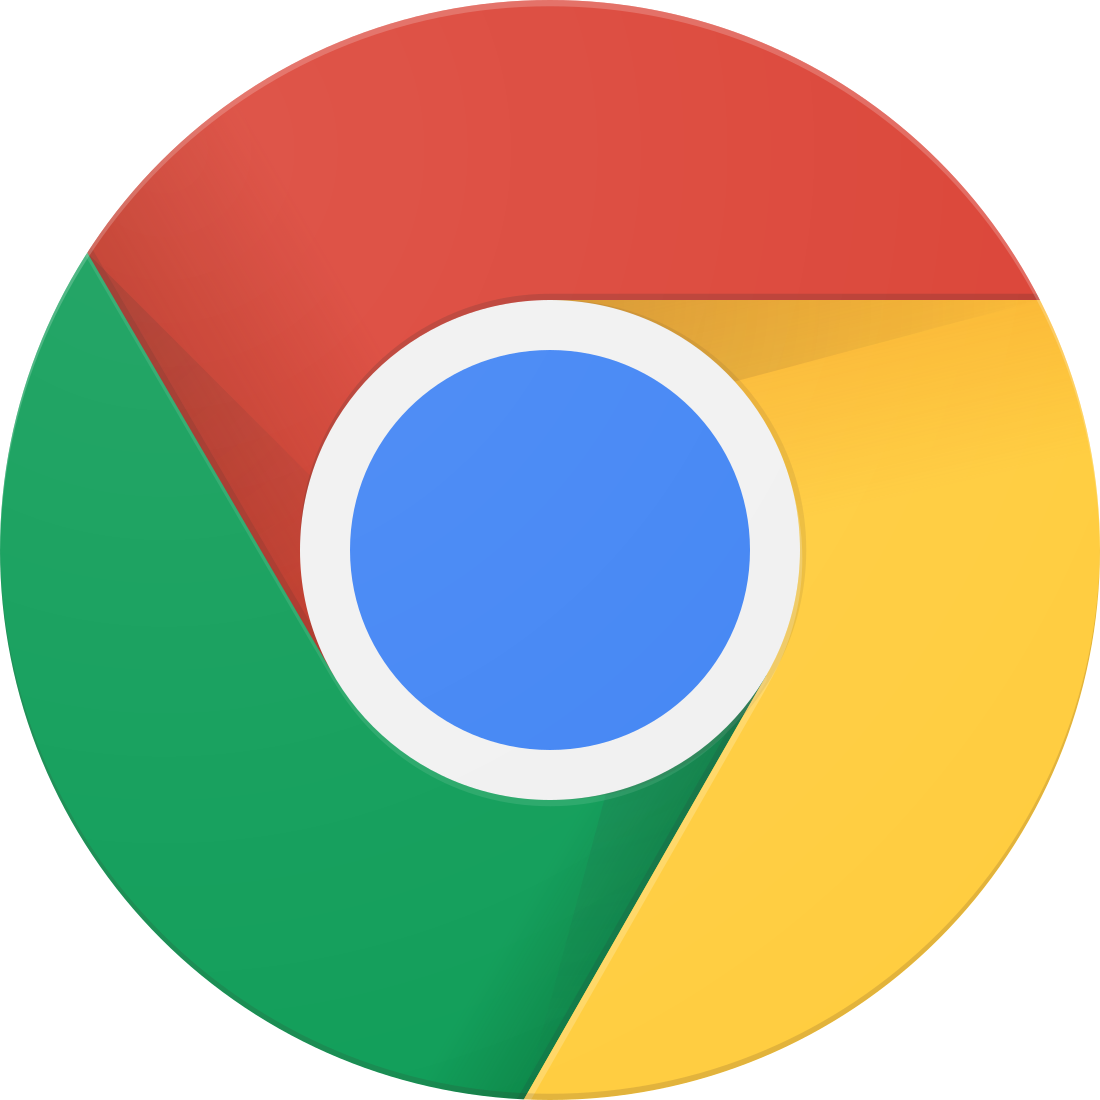 google chrome logo 6 - Google Chrome Logo